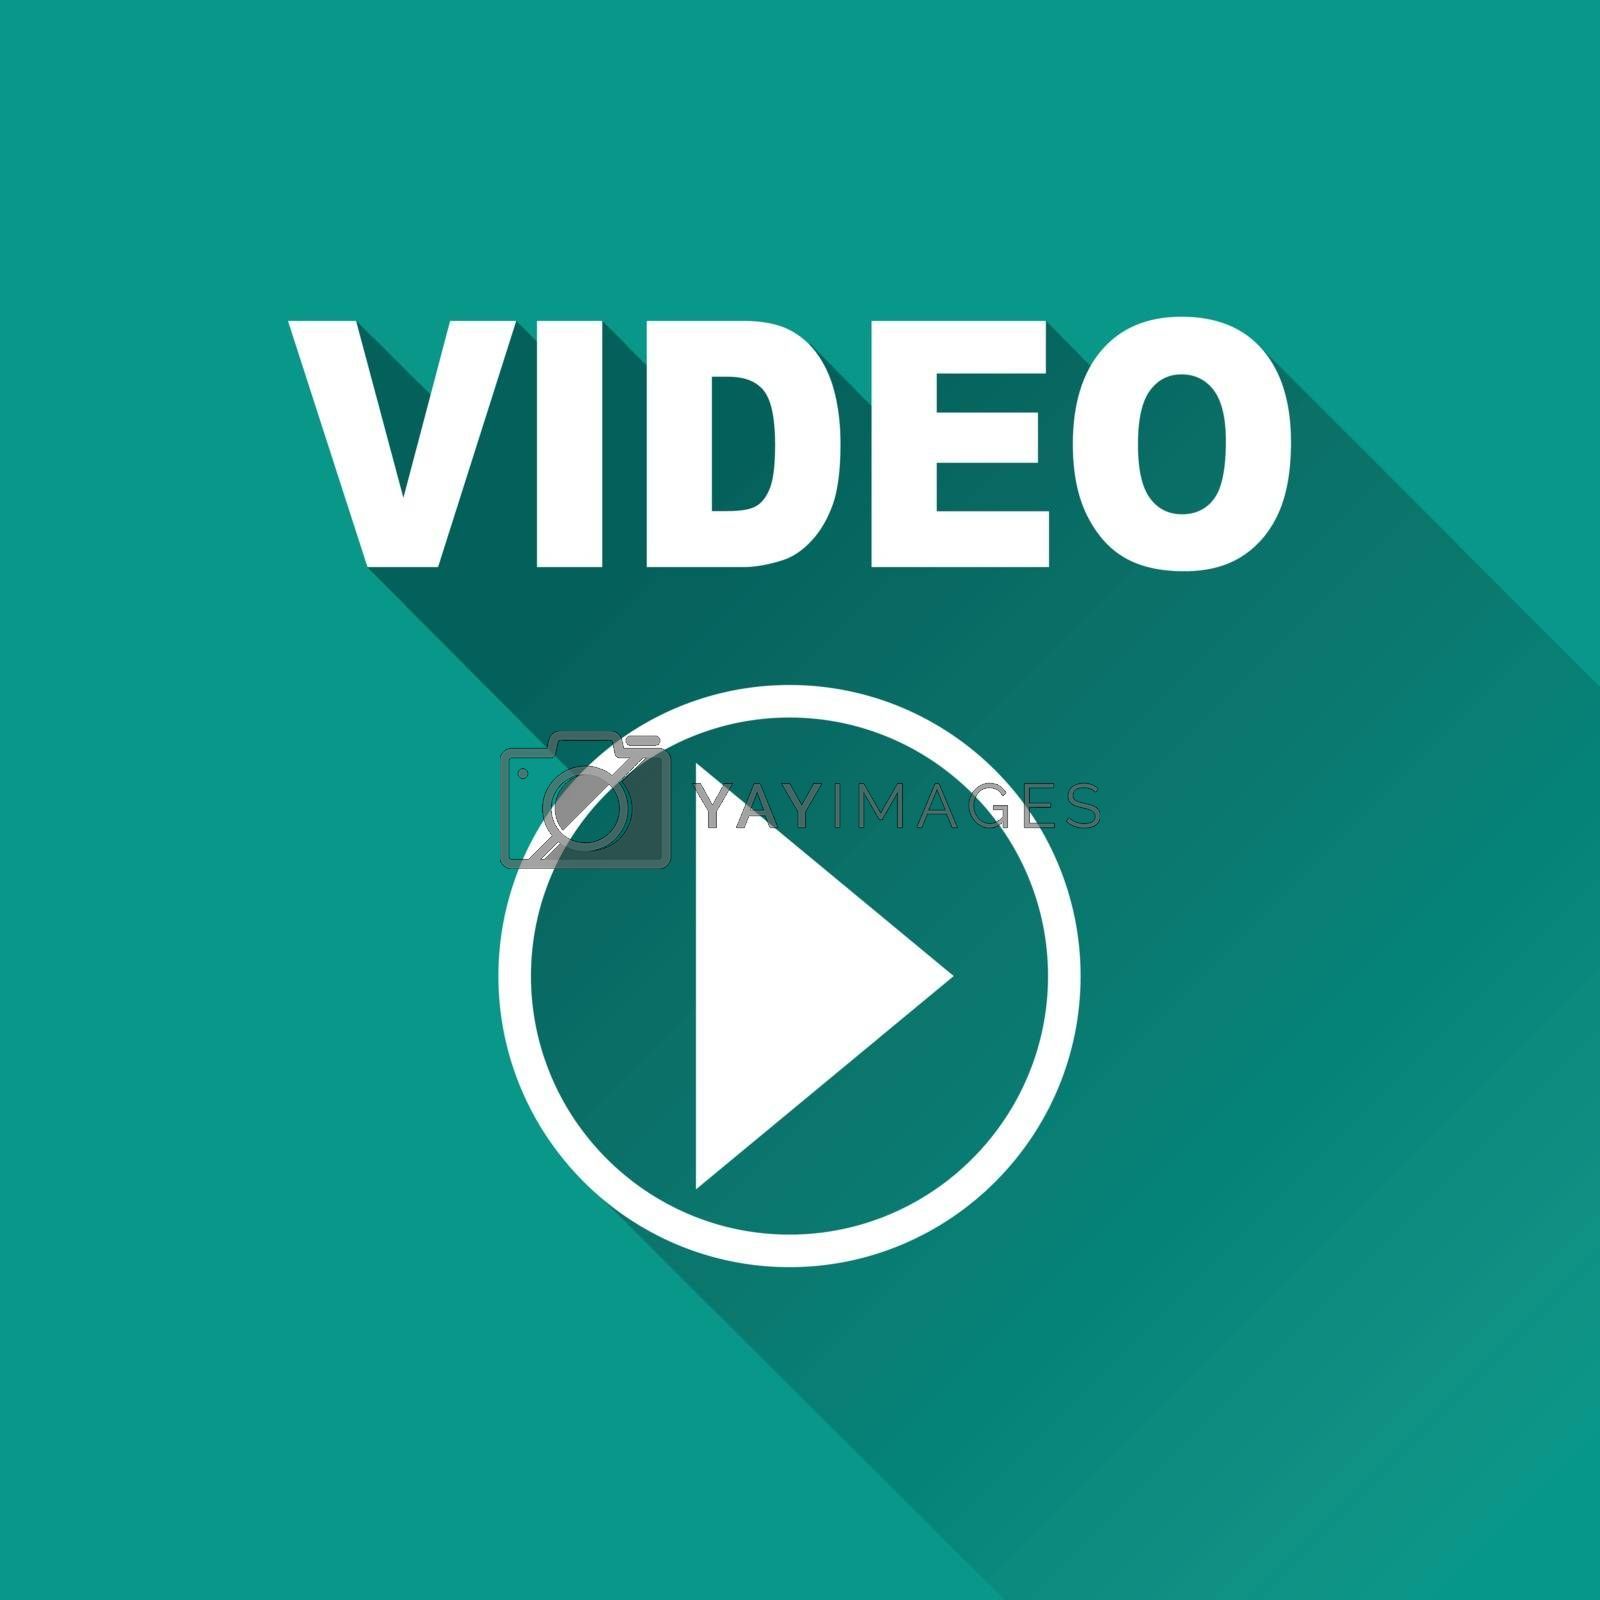 Royalty free image of video flat design icon by nickylarson974